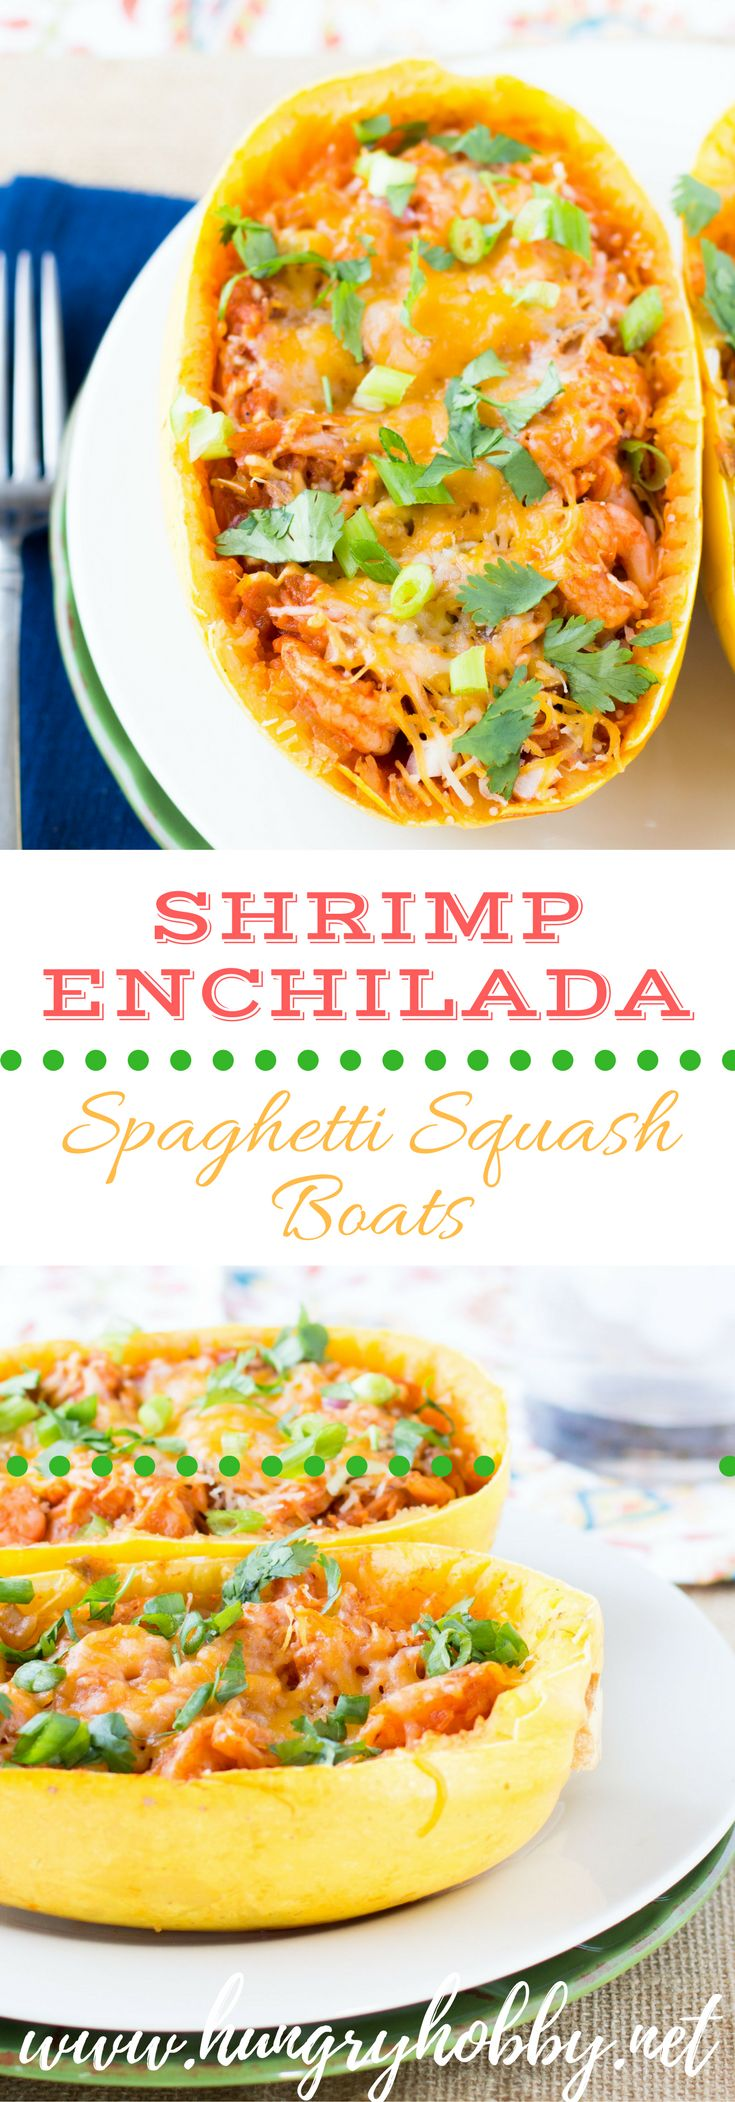 Shrimp Enchilada Spaghetti Squash Boats is a fun and extremely flavorful way to eat your veggies!  A winning dinner every time!  Read on to find out how to make this a one pot meal!  via @hungryhobby